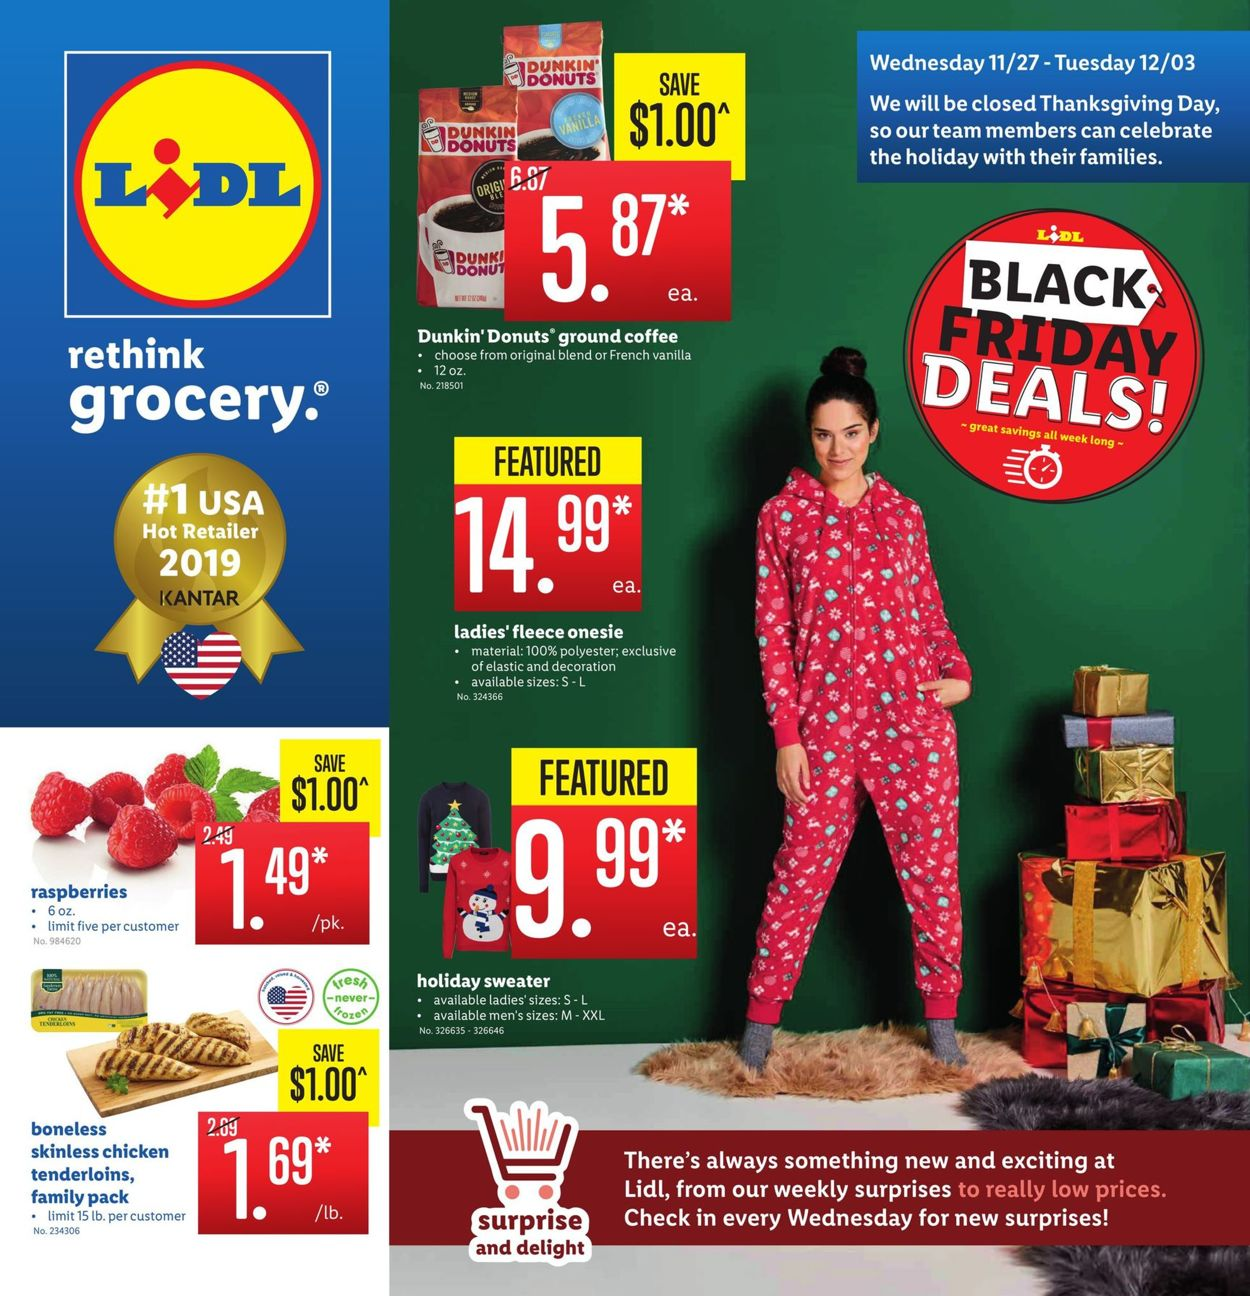 Lidl Black Friday Deals 2019 Current Weekly Ad 11 27 12 03 2019 Frequent Ads Com